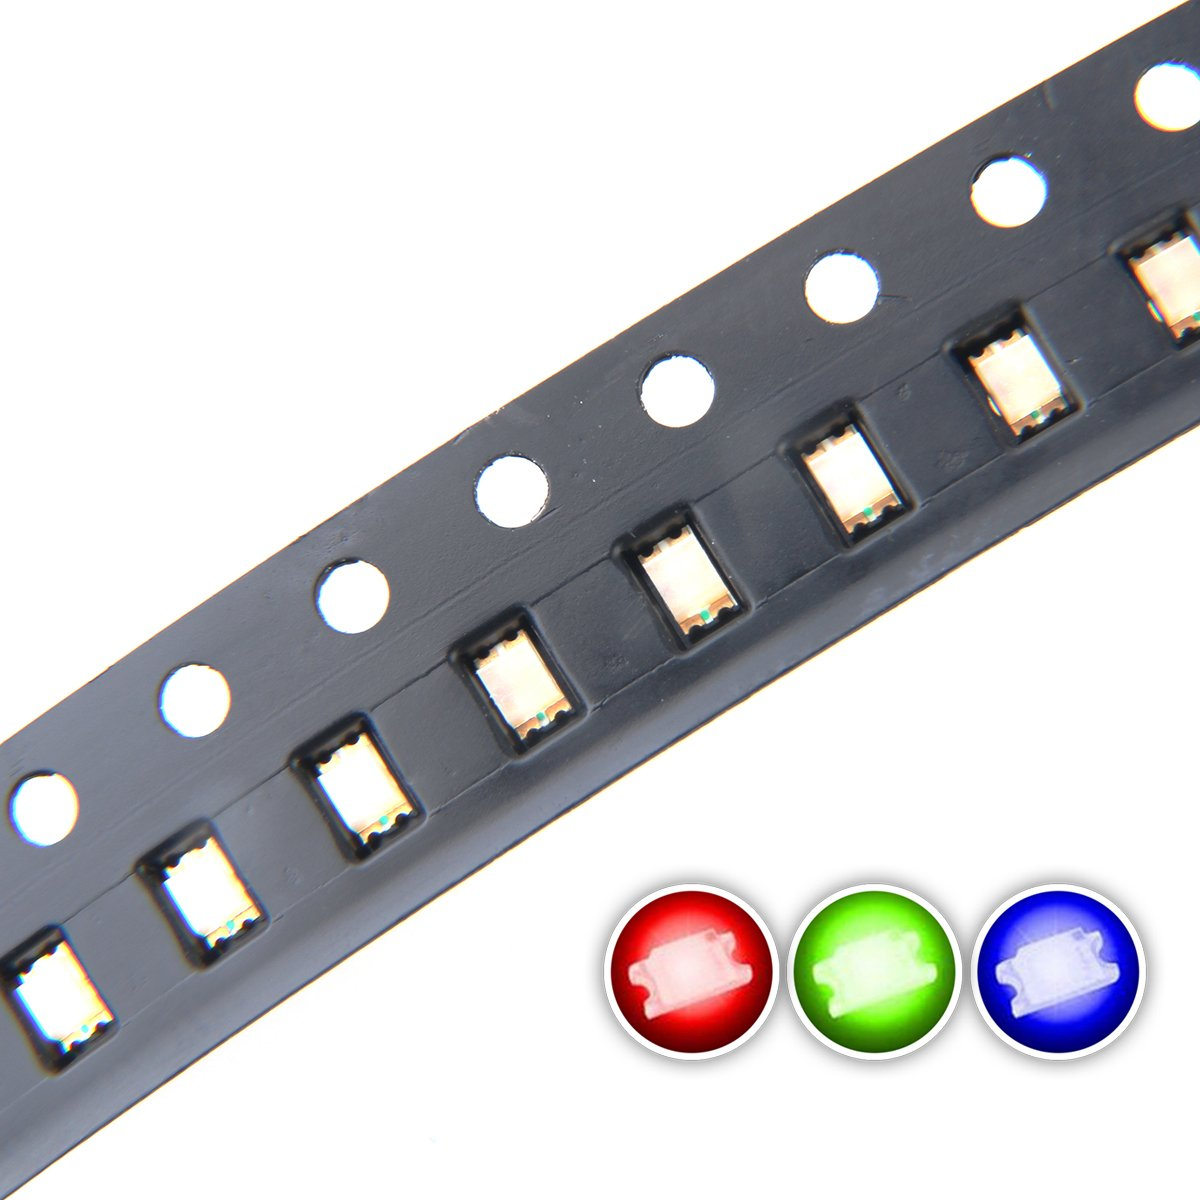 0805 SMD LED Diode Lights Chips Emitting White/Red/Green/Blue/Yellow/Purple/Pink